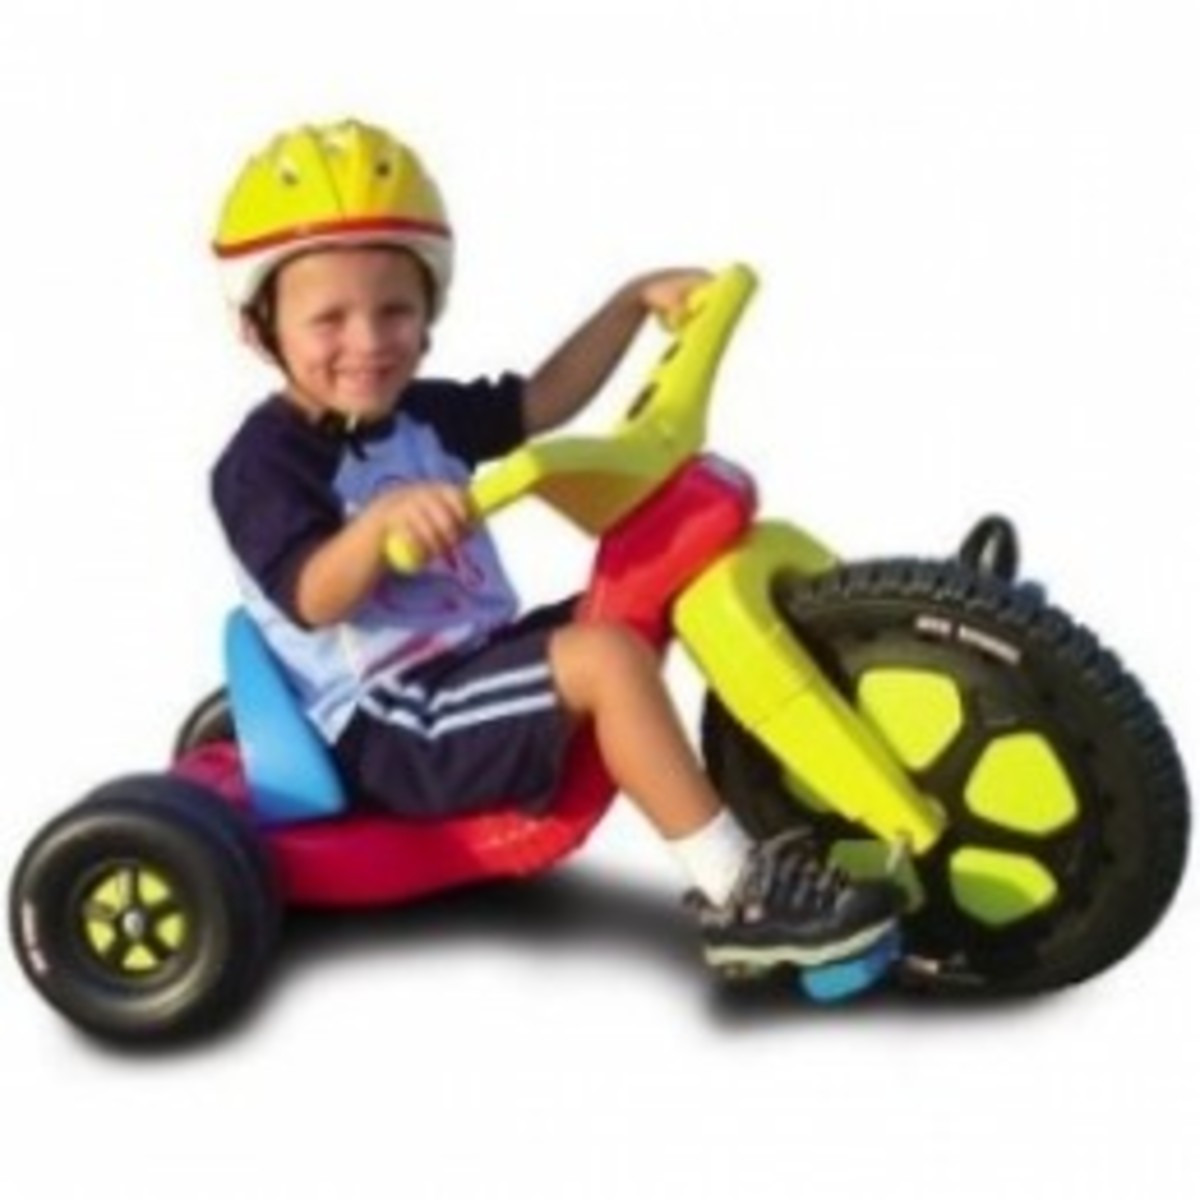 The Big Wheels for Kids: A Little History, Big Wheels Models and a Funny Race